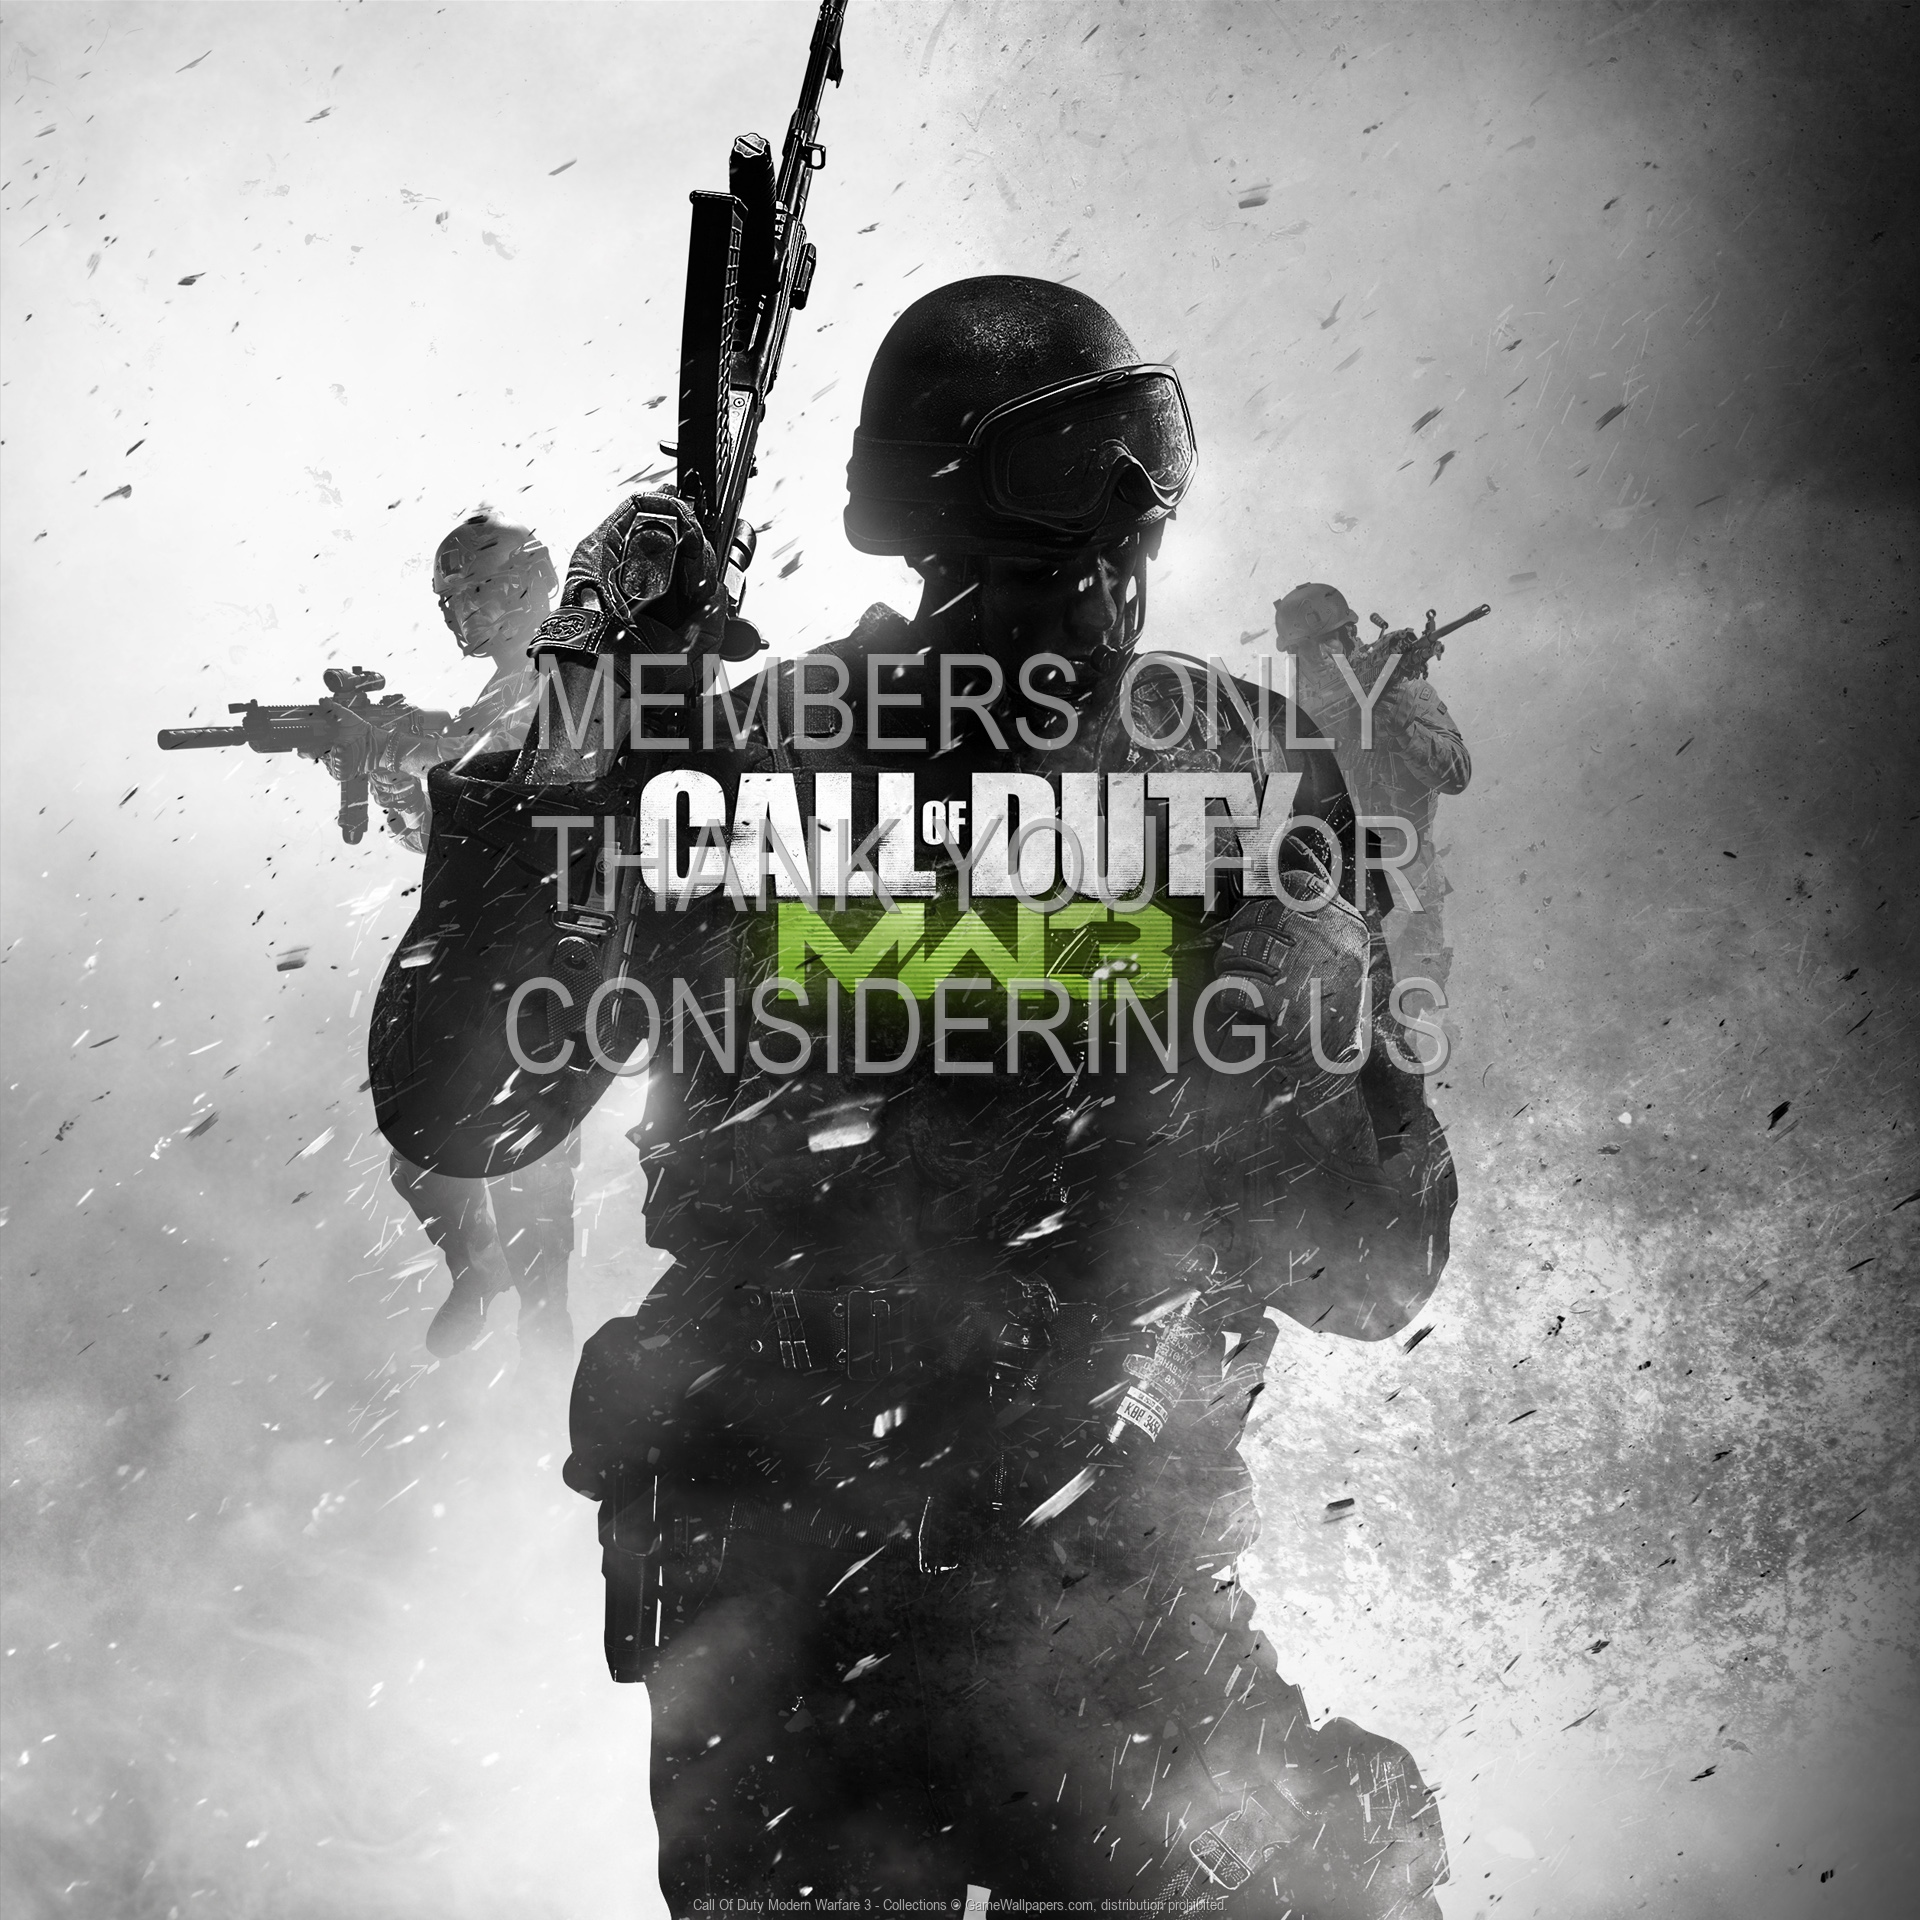 Call Of Duty: Modern Warfare 3 - Collections 1920x1080 Handy Hintergrundbild 02